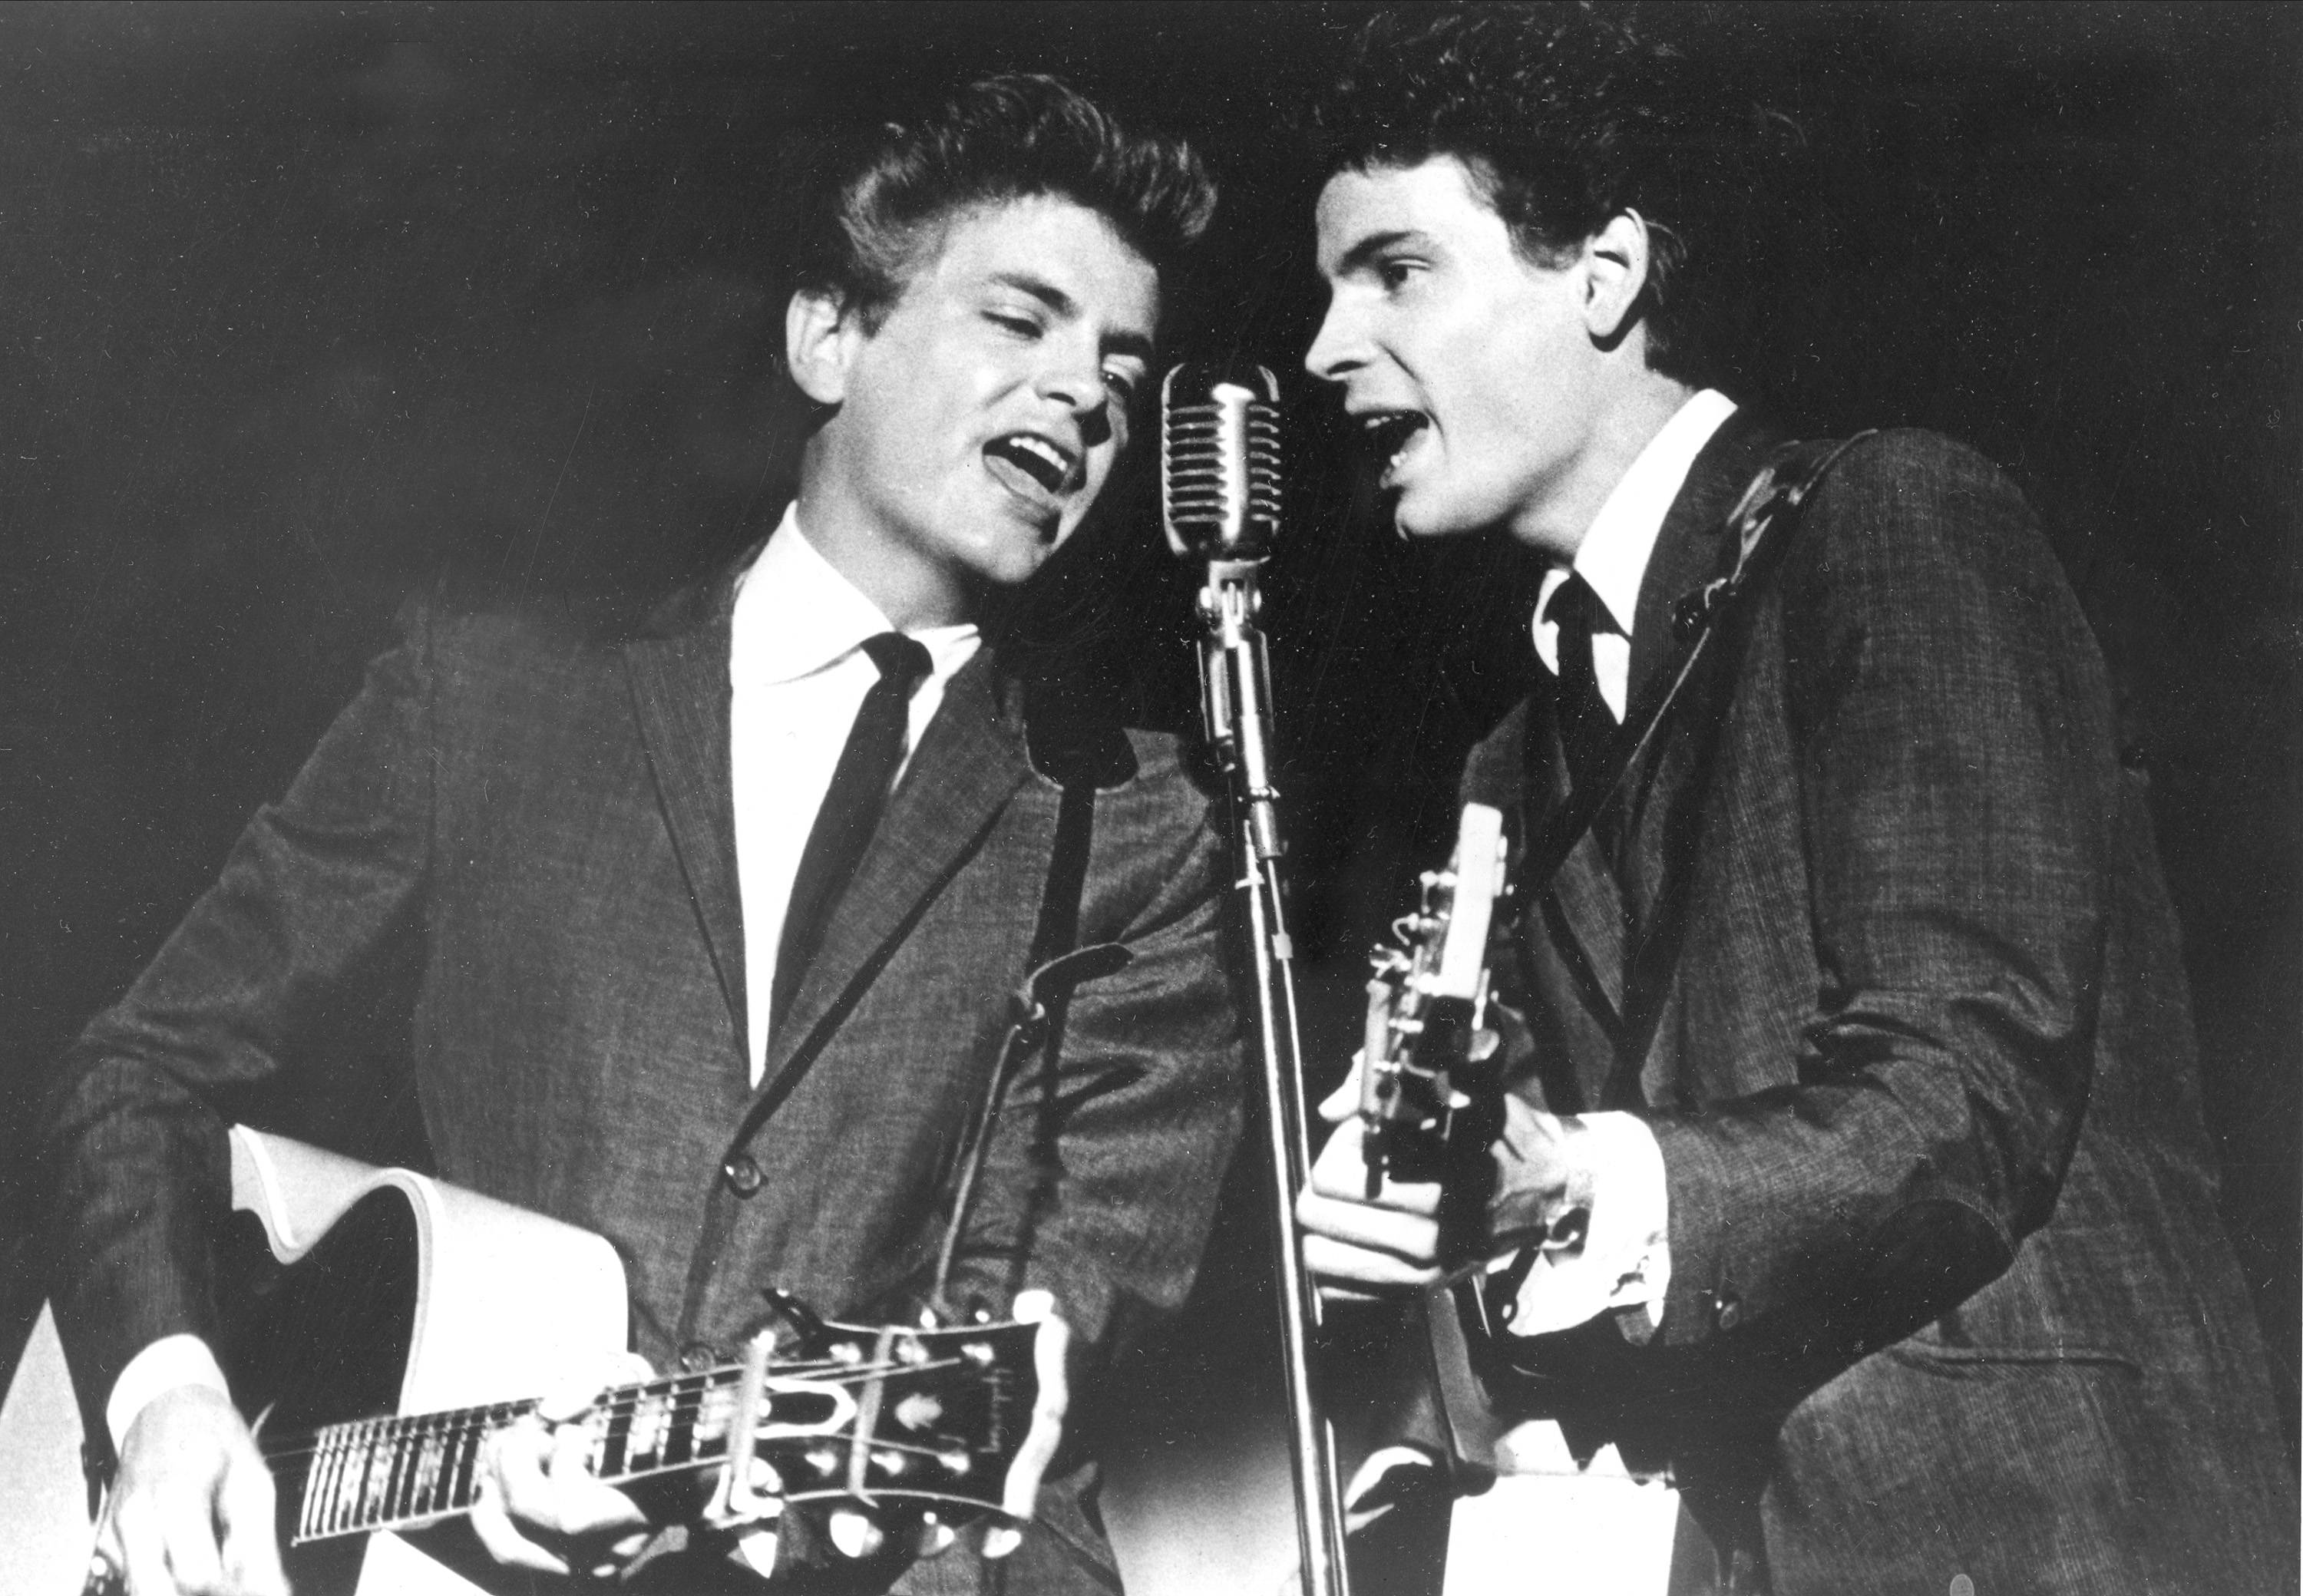 Don Everly and Phil Everly of The Everly Brothers during a 1964 performance. The Rock and Roll of Fame will honor the Everly Brothers with a tribute concert this fall featuring surviving member Don Everly.